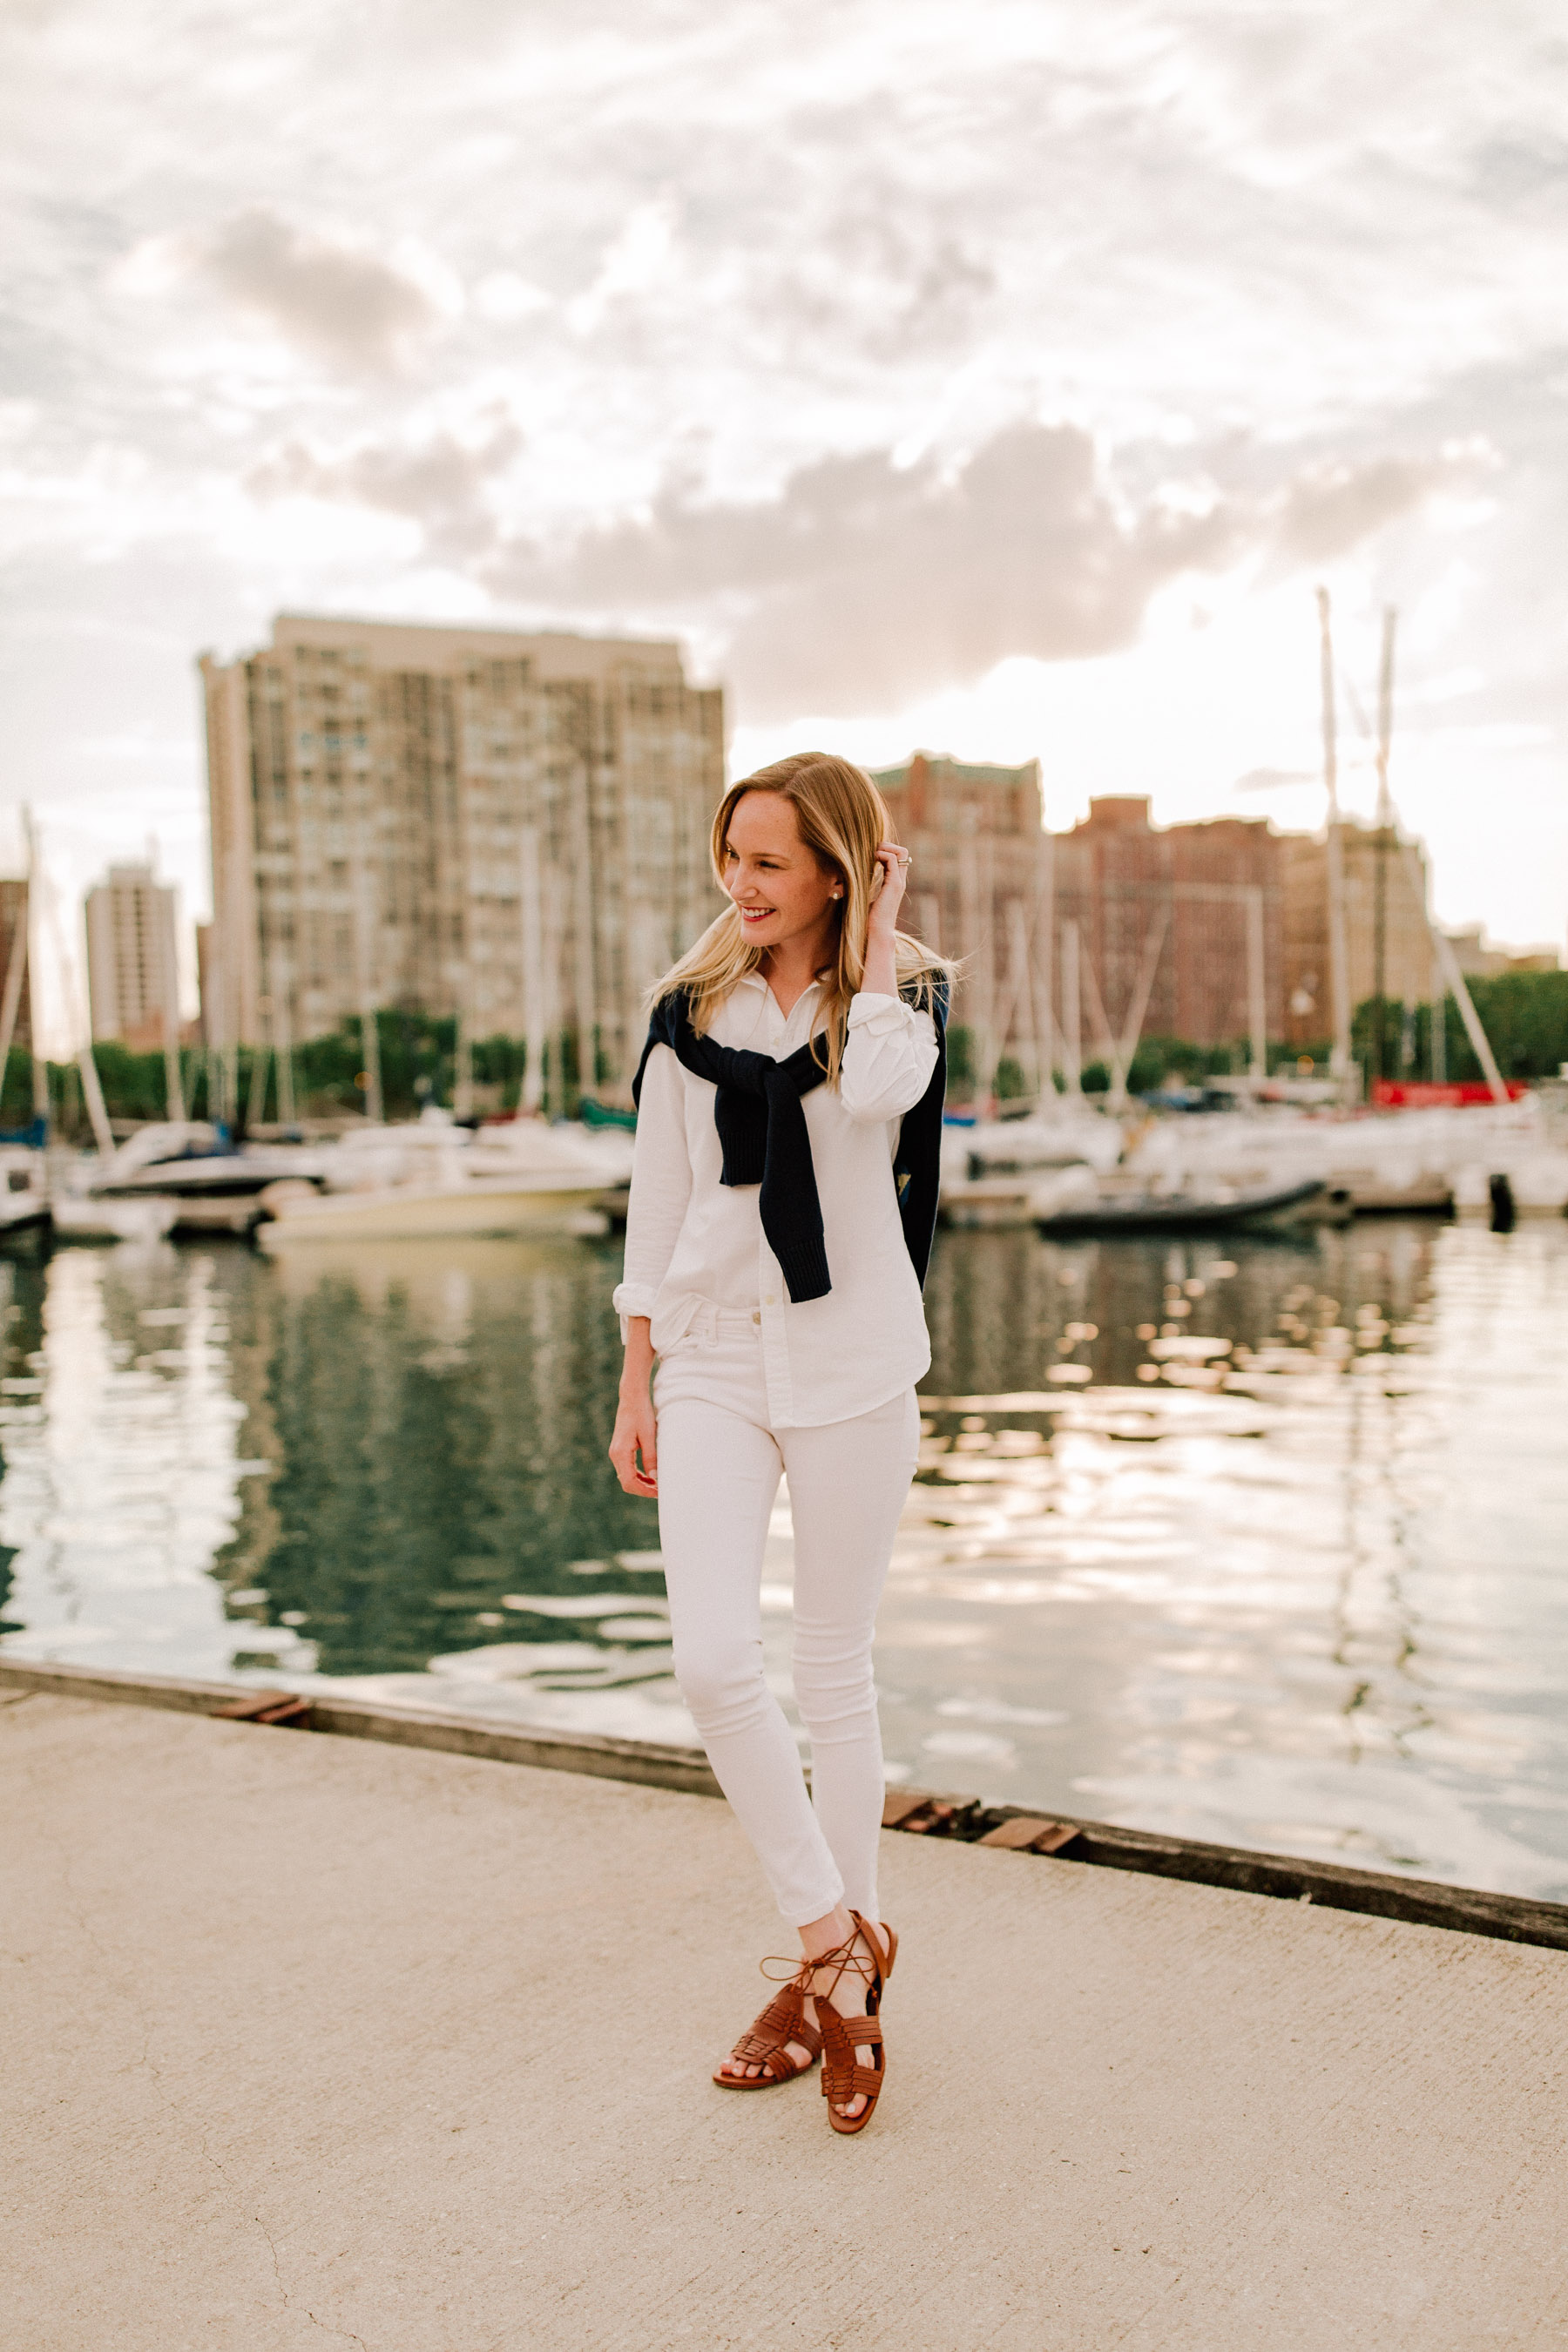 Boat Cotton Rollneck Sweater / Knit Cotton Oxford Shirt / Leather Vachetta Sandals / Leather Lennox Bag - Kelly in the city